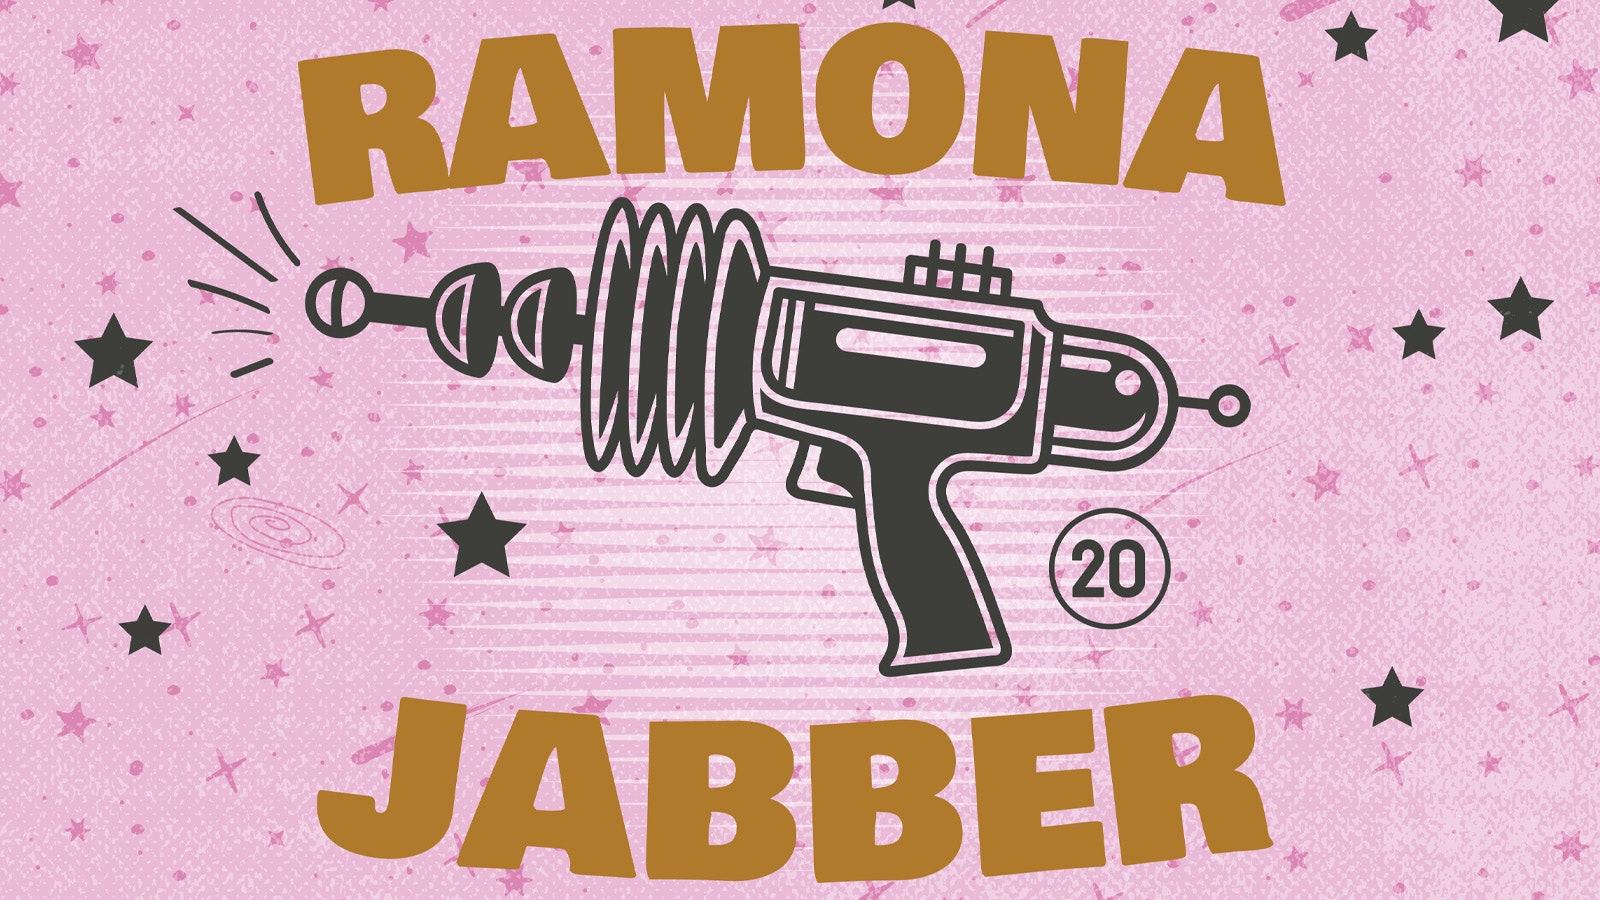 *CANCELLED* Ramona (US) + Jabber (US) + Guests